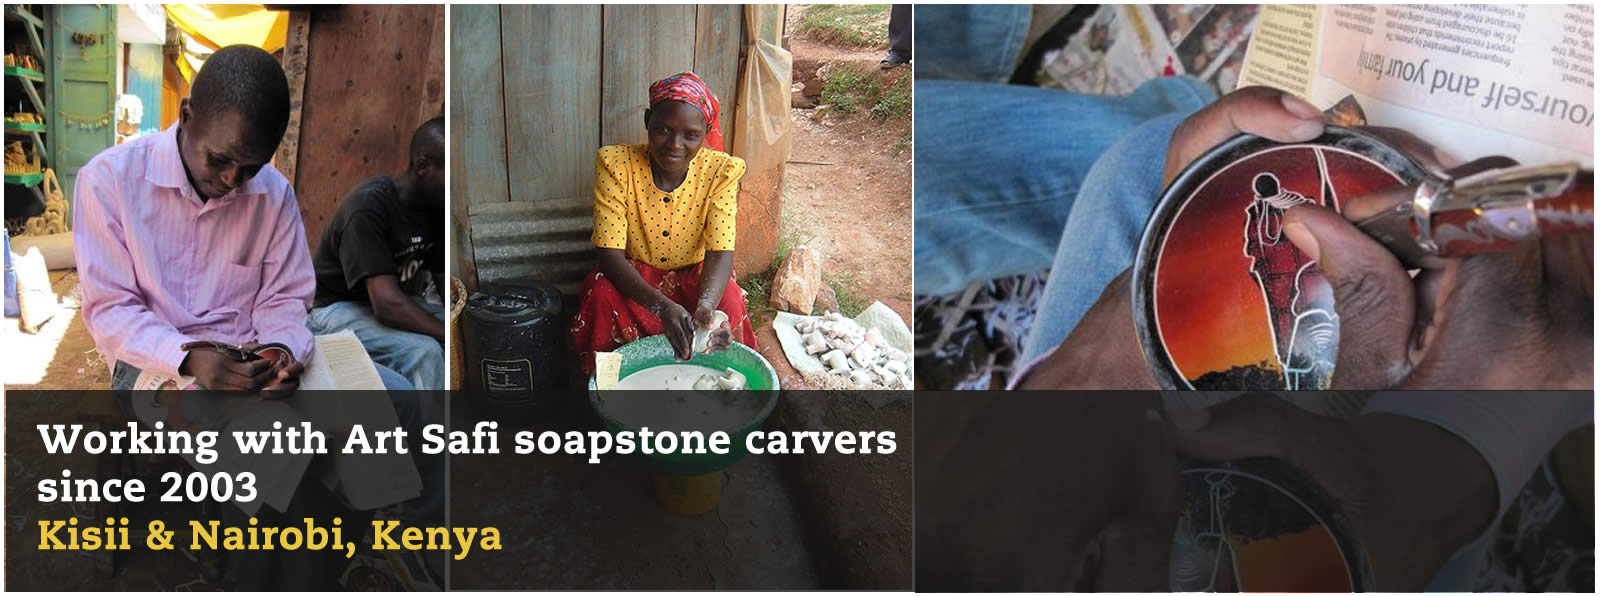 Working with Art Safi Soapstone carvers since 2003